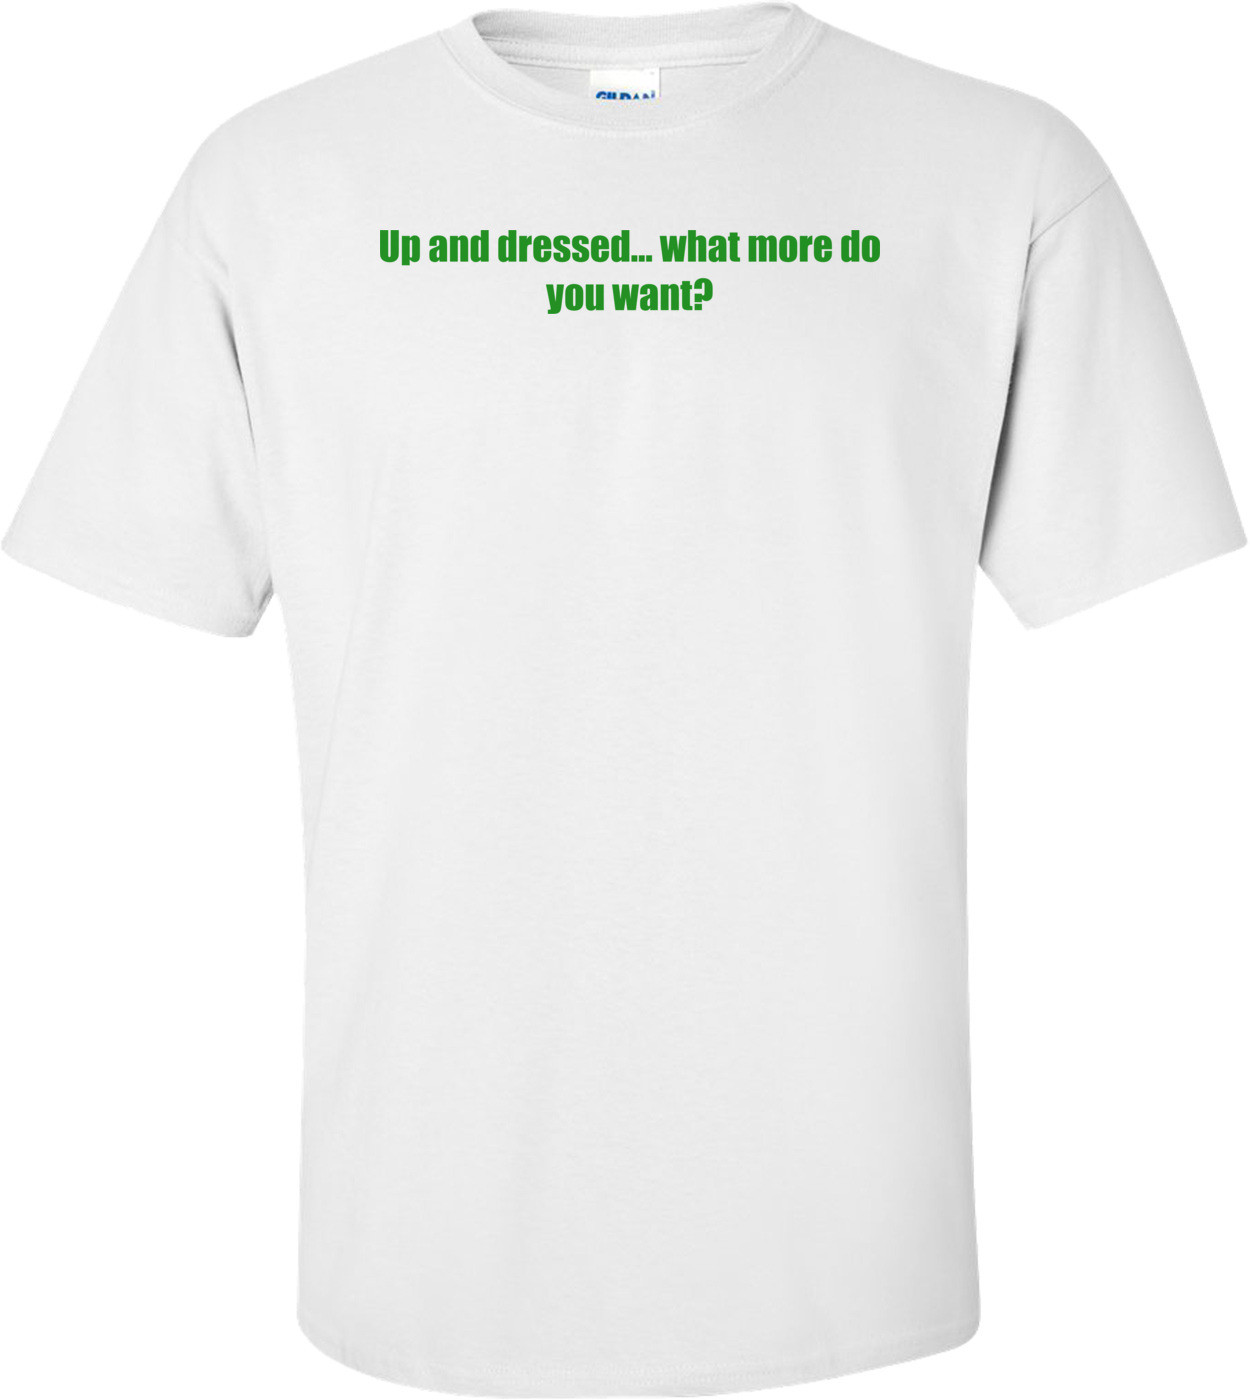 Up and dressed... what more do you want? Shirt